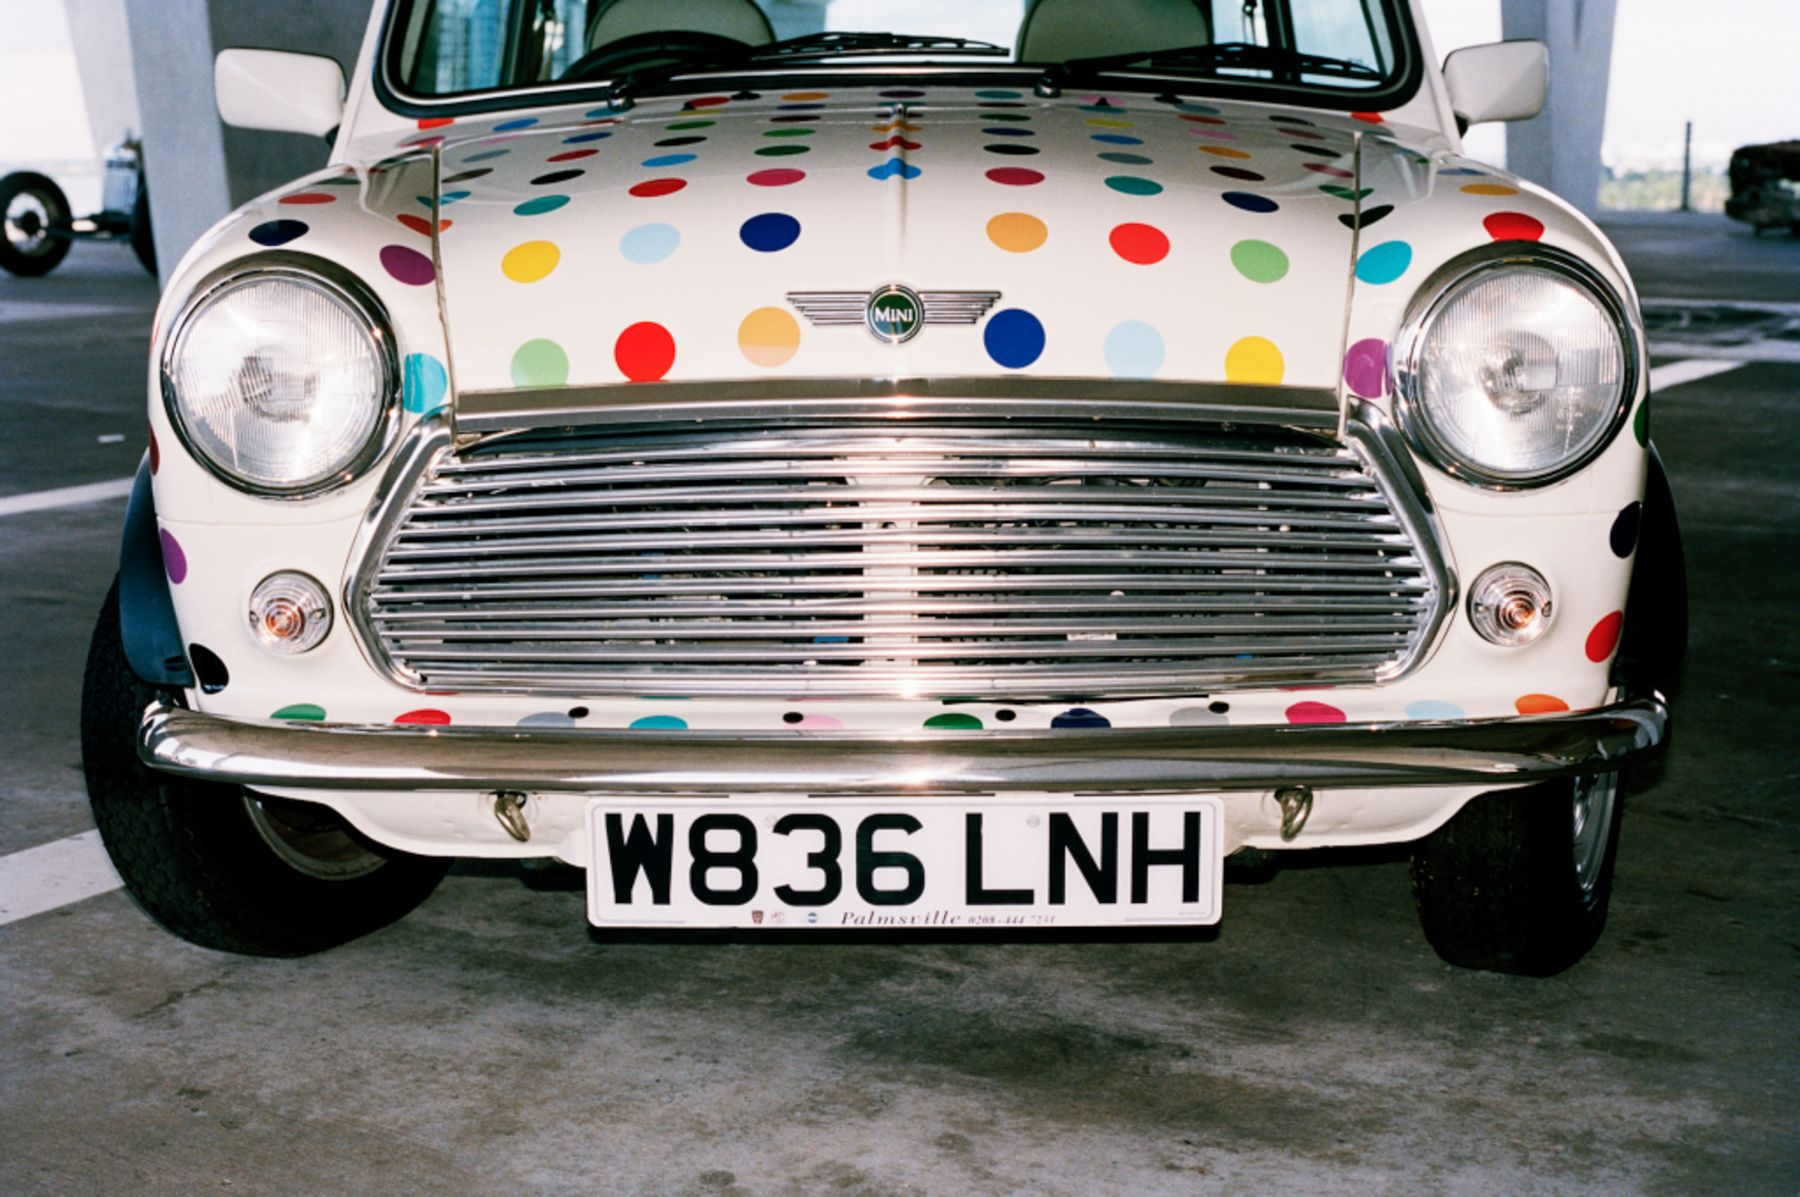 Piston Head Damien Hirst Untitled (Spot Mini)